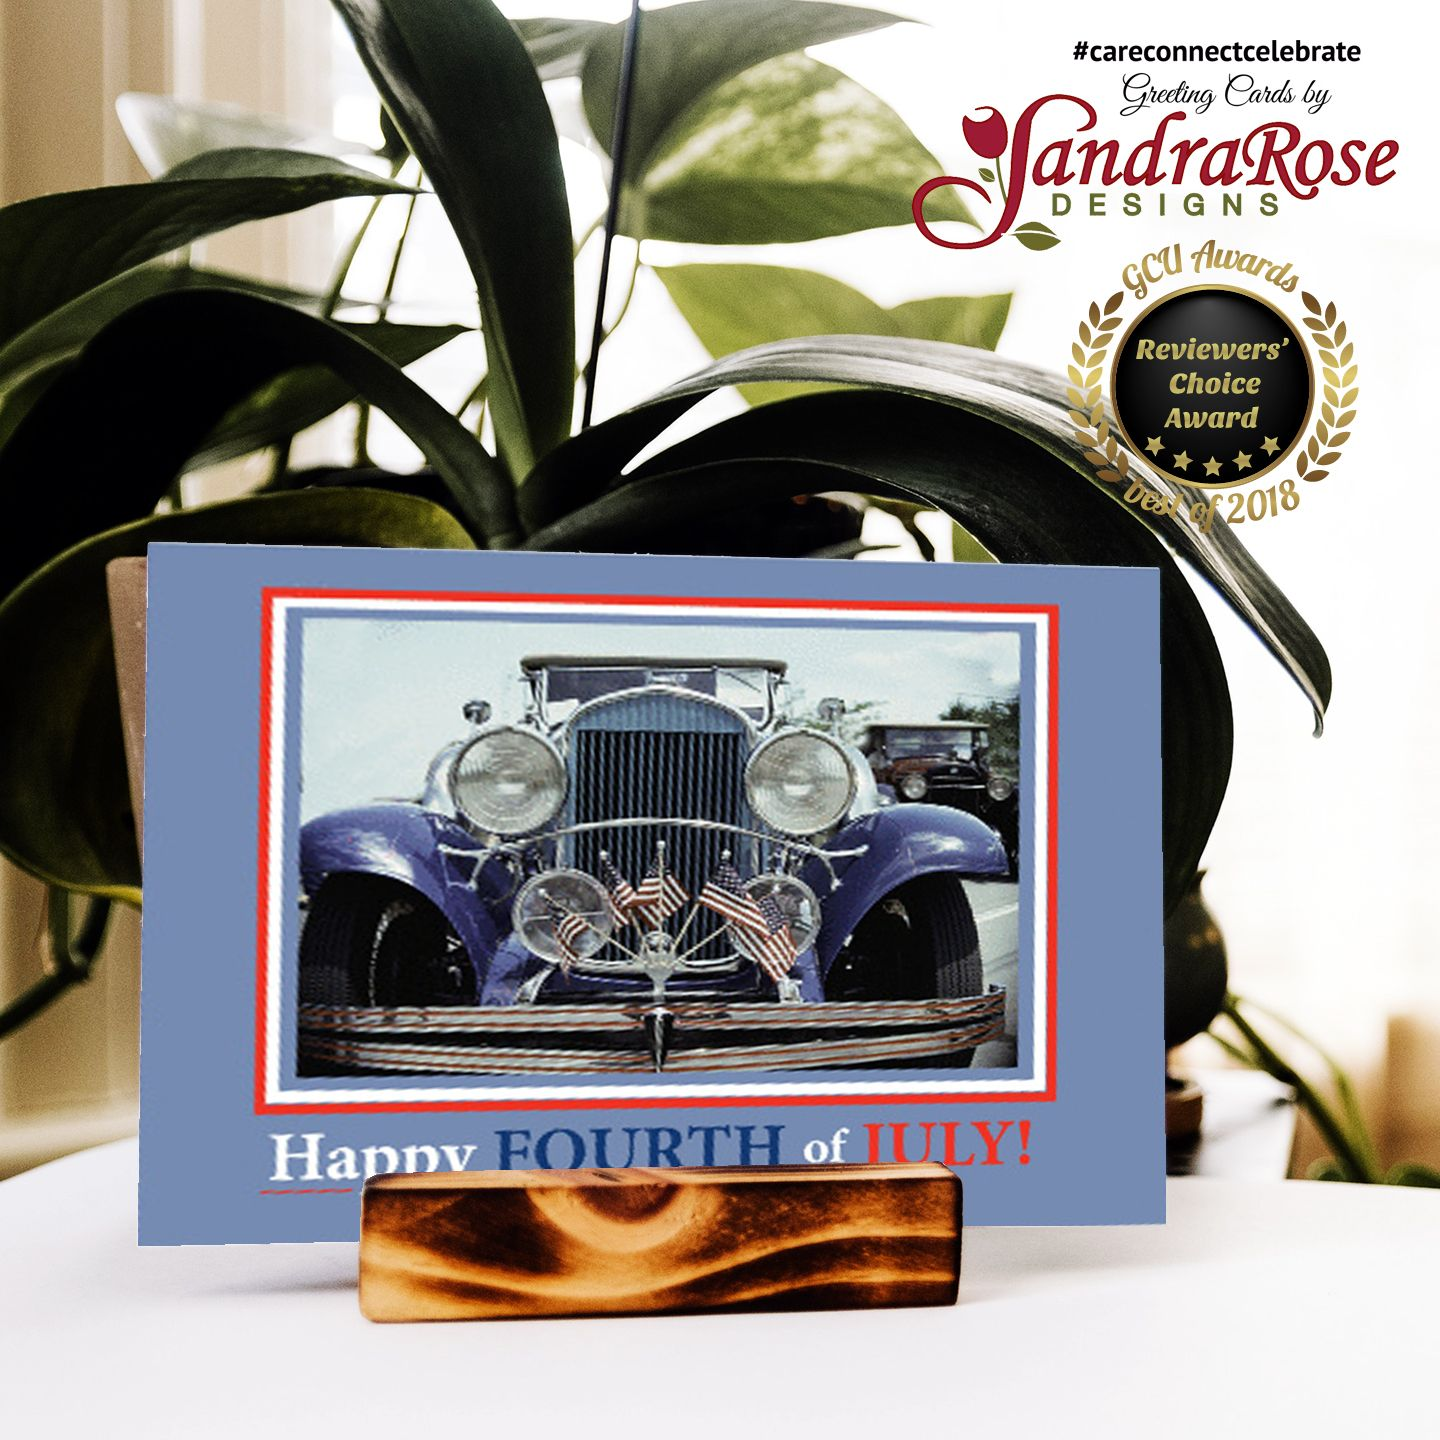 Happy Fourth of July with Classic Car and American Flags card